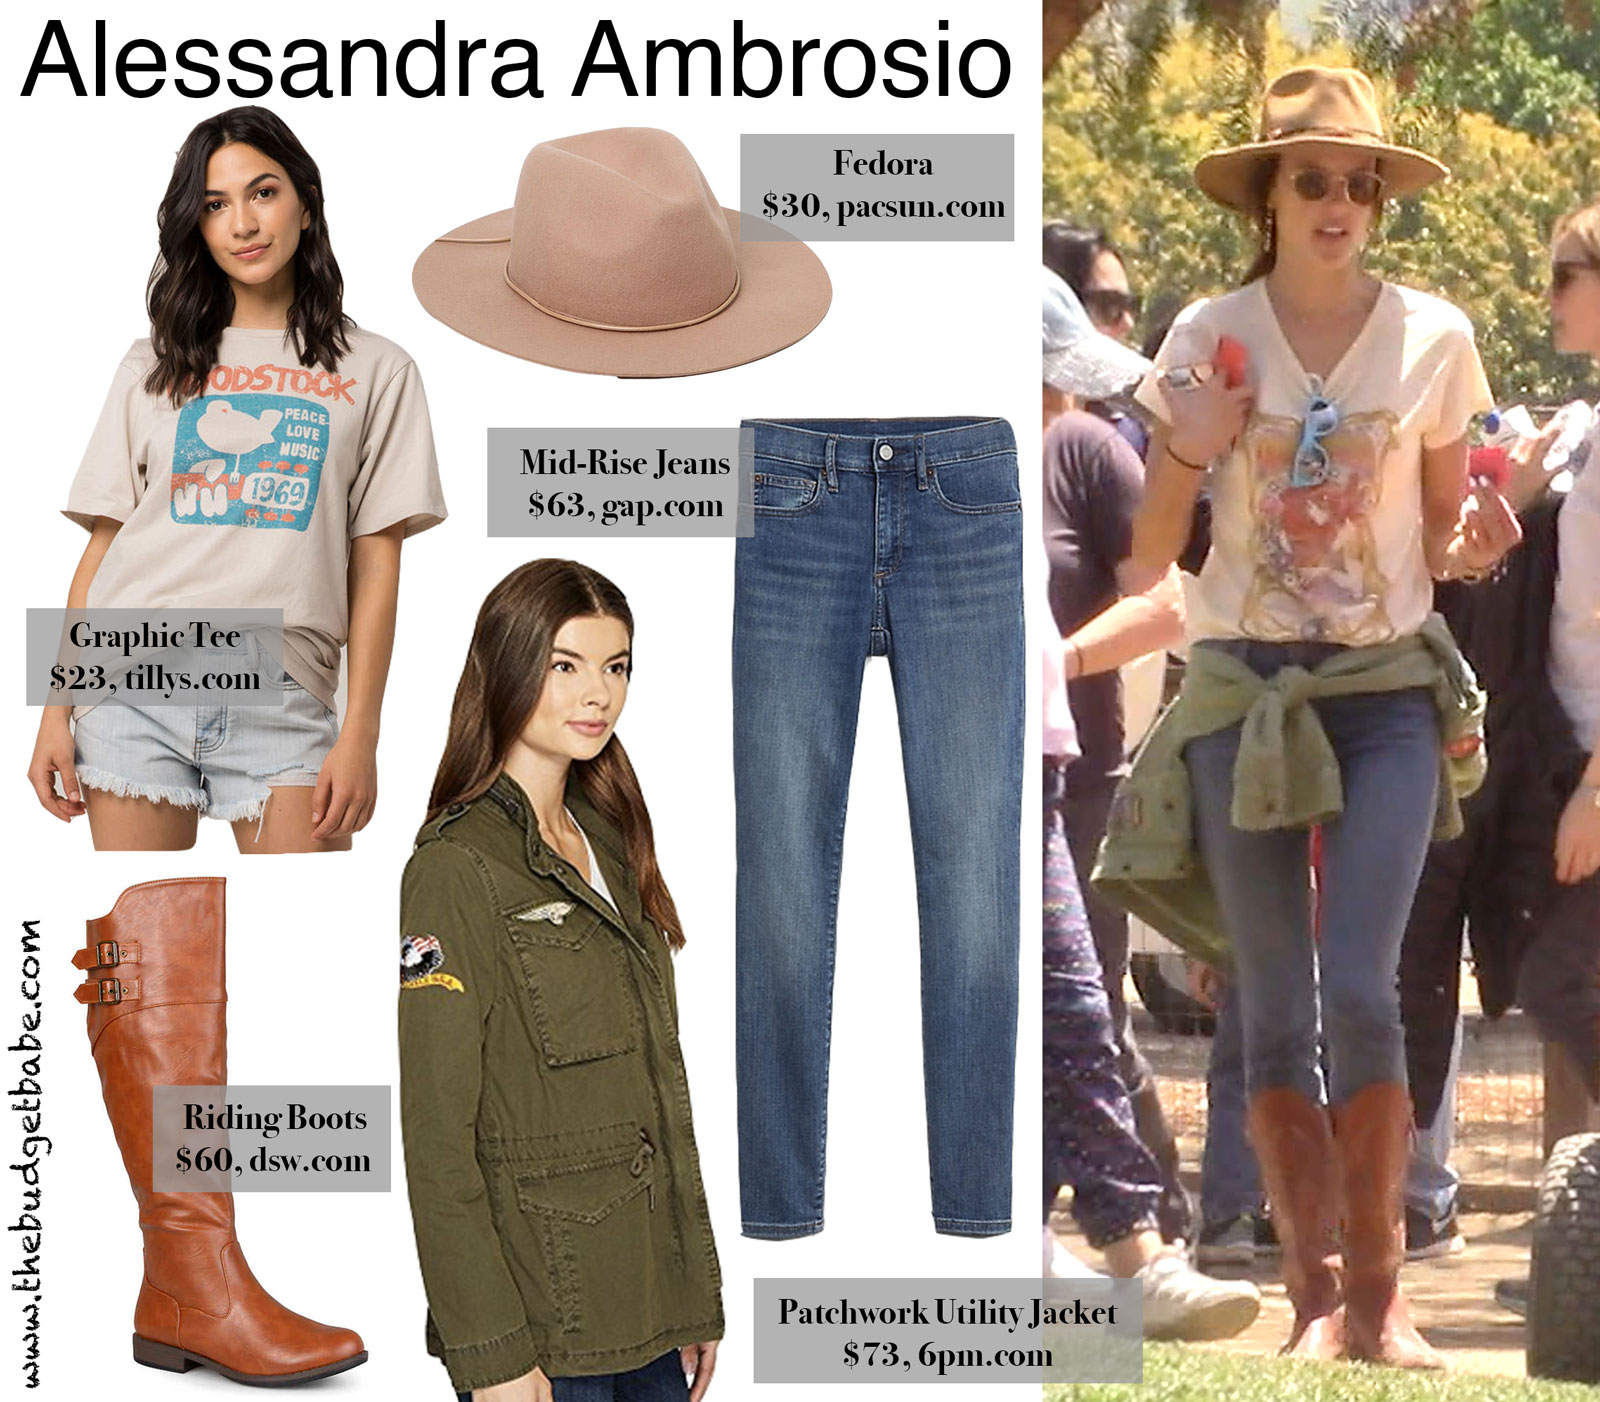 Alessandra Ambrosio Graphic Tee and Fedora Look for Less